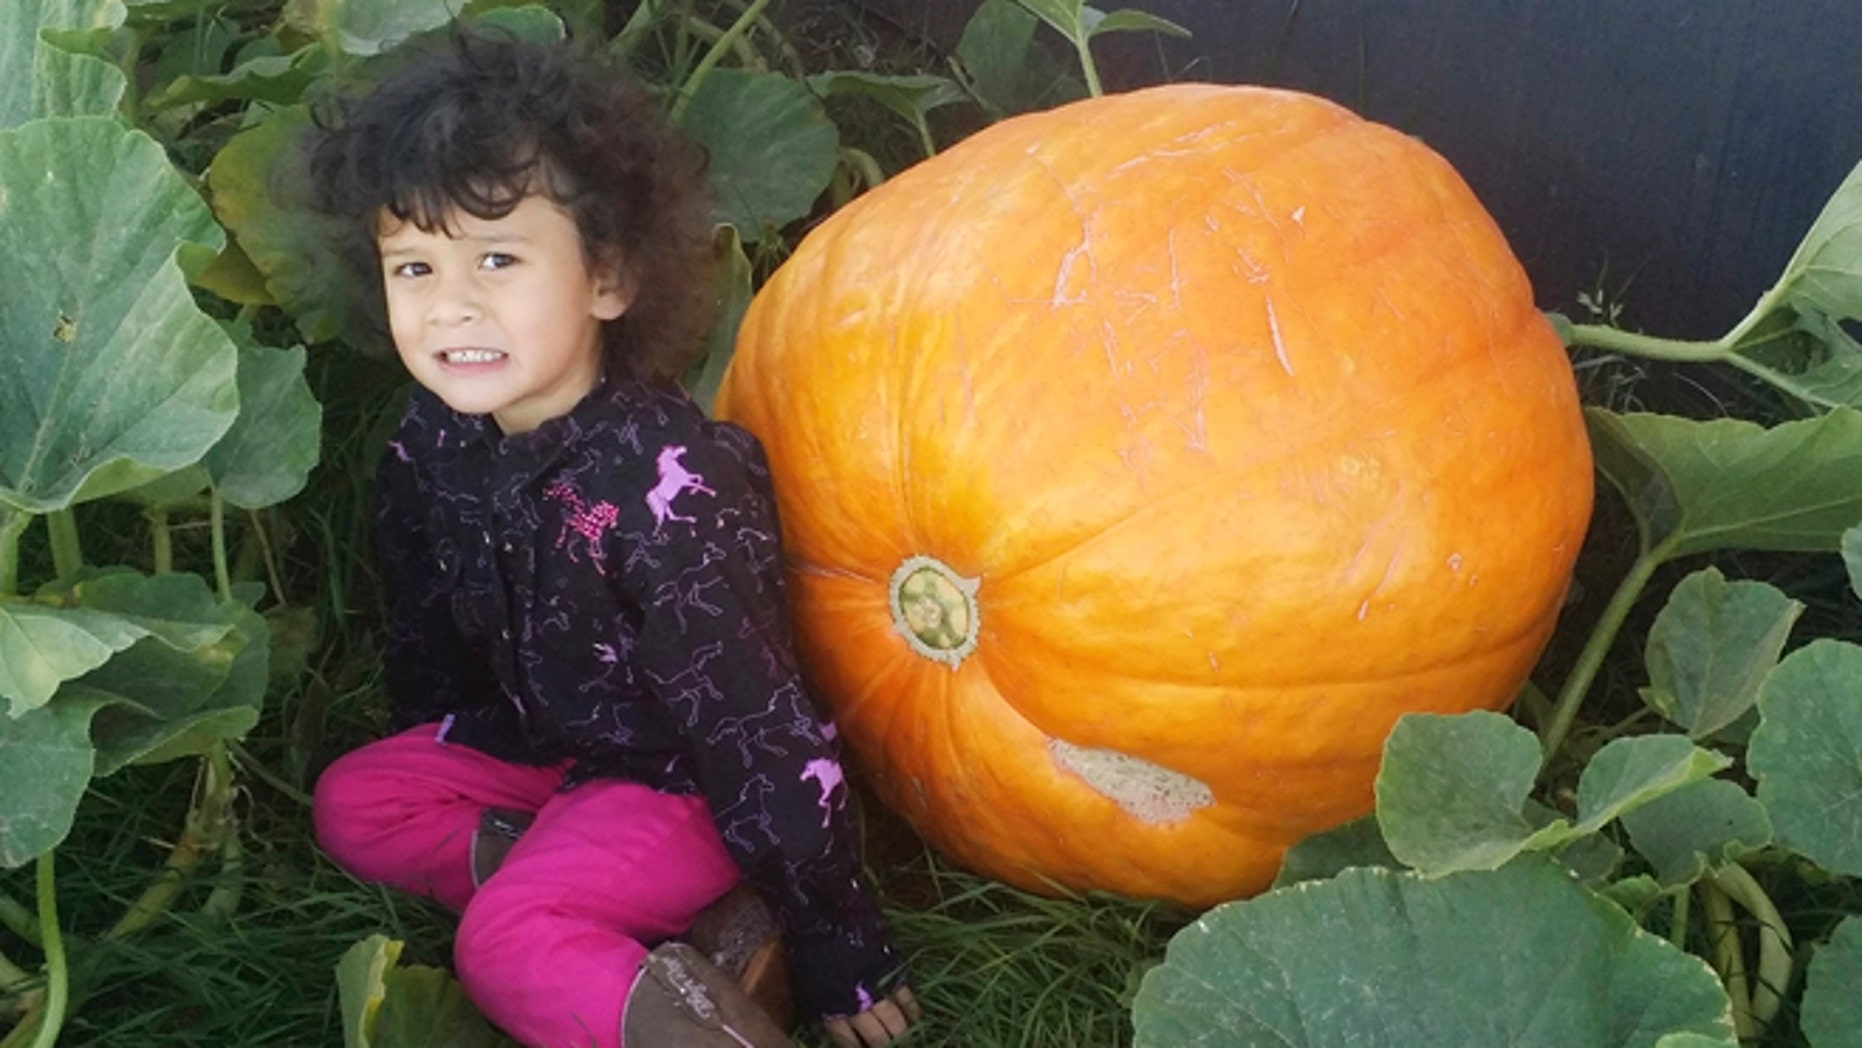 Sept. 18, 2015: In this photo, provided by Matthew Murraine, his daughter, Lilianna, poses next to a giant pumpkin that weighs about 100 pounds outside their home in Spearfish, S.D. The pumpkin was stolen later in the day in what the Murraine calls a heist that was carefully planned.